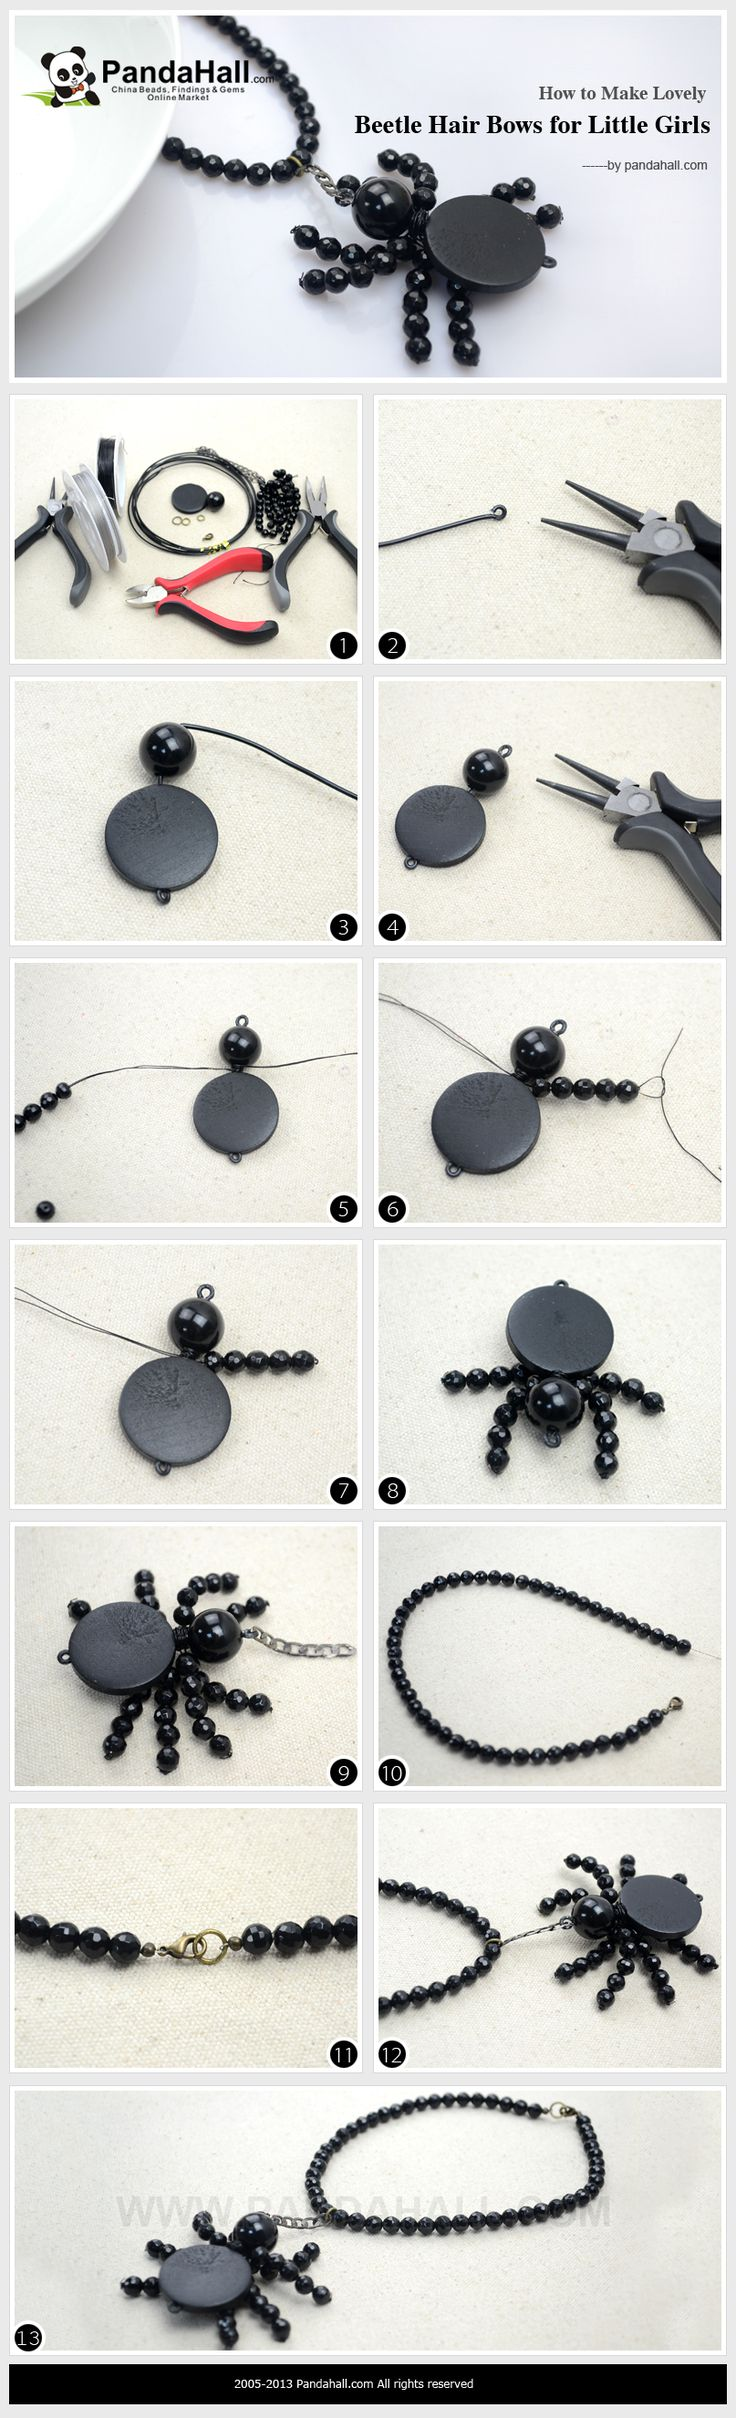 How to Make Halloween Spider Necklace - Simple Beaded Spider Necklace DIY